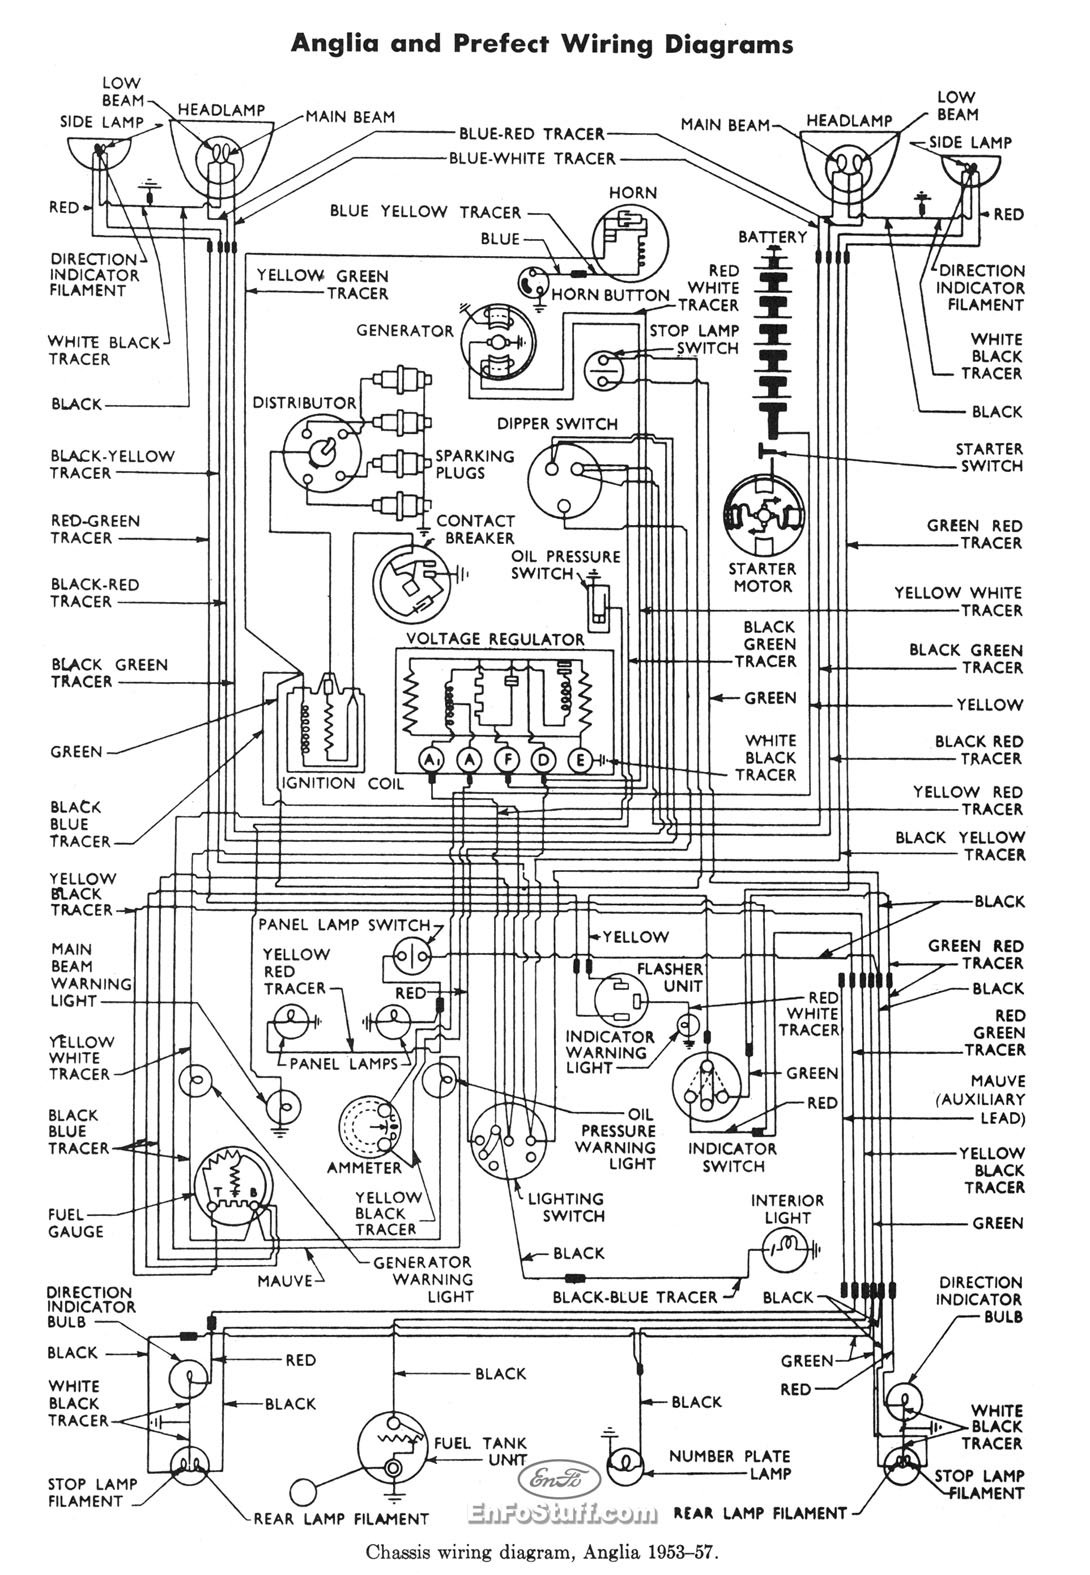 wiring diagram for ford anglia 1953 57 1996 land rover discovery se7 fuse box layout 1996 land rover discovery engine diagram